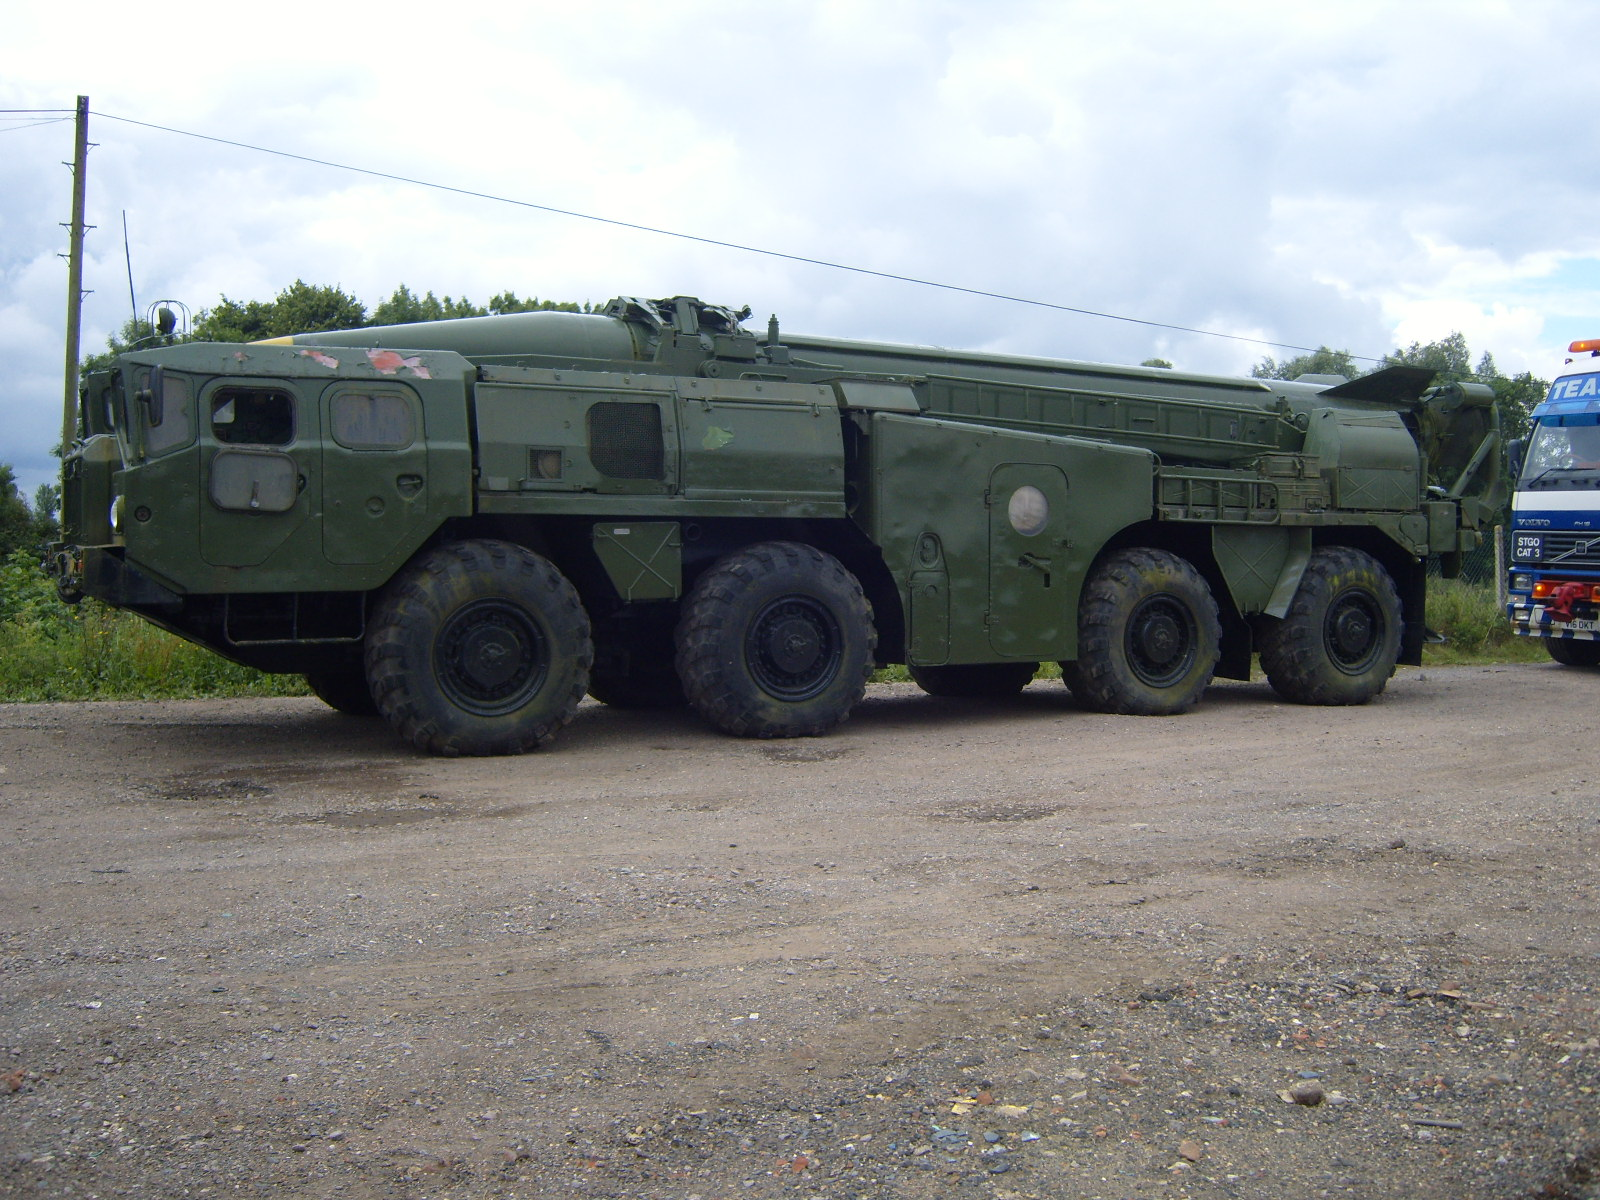 Sources For Surplus Military Vehicles including Armor